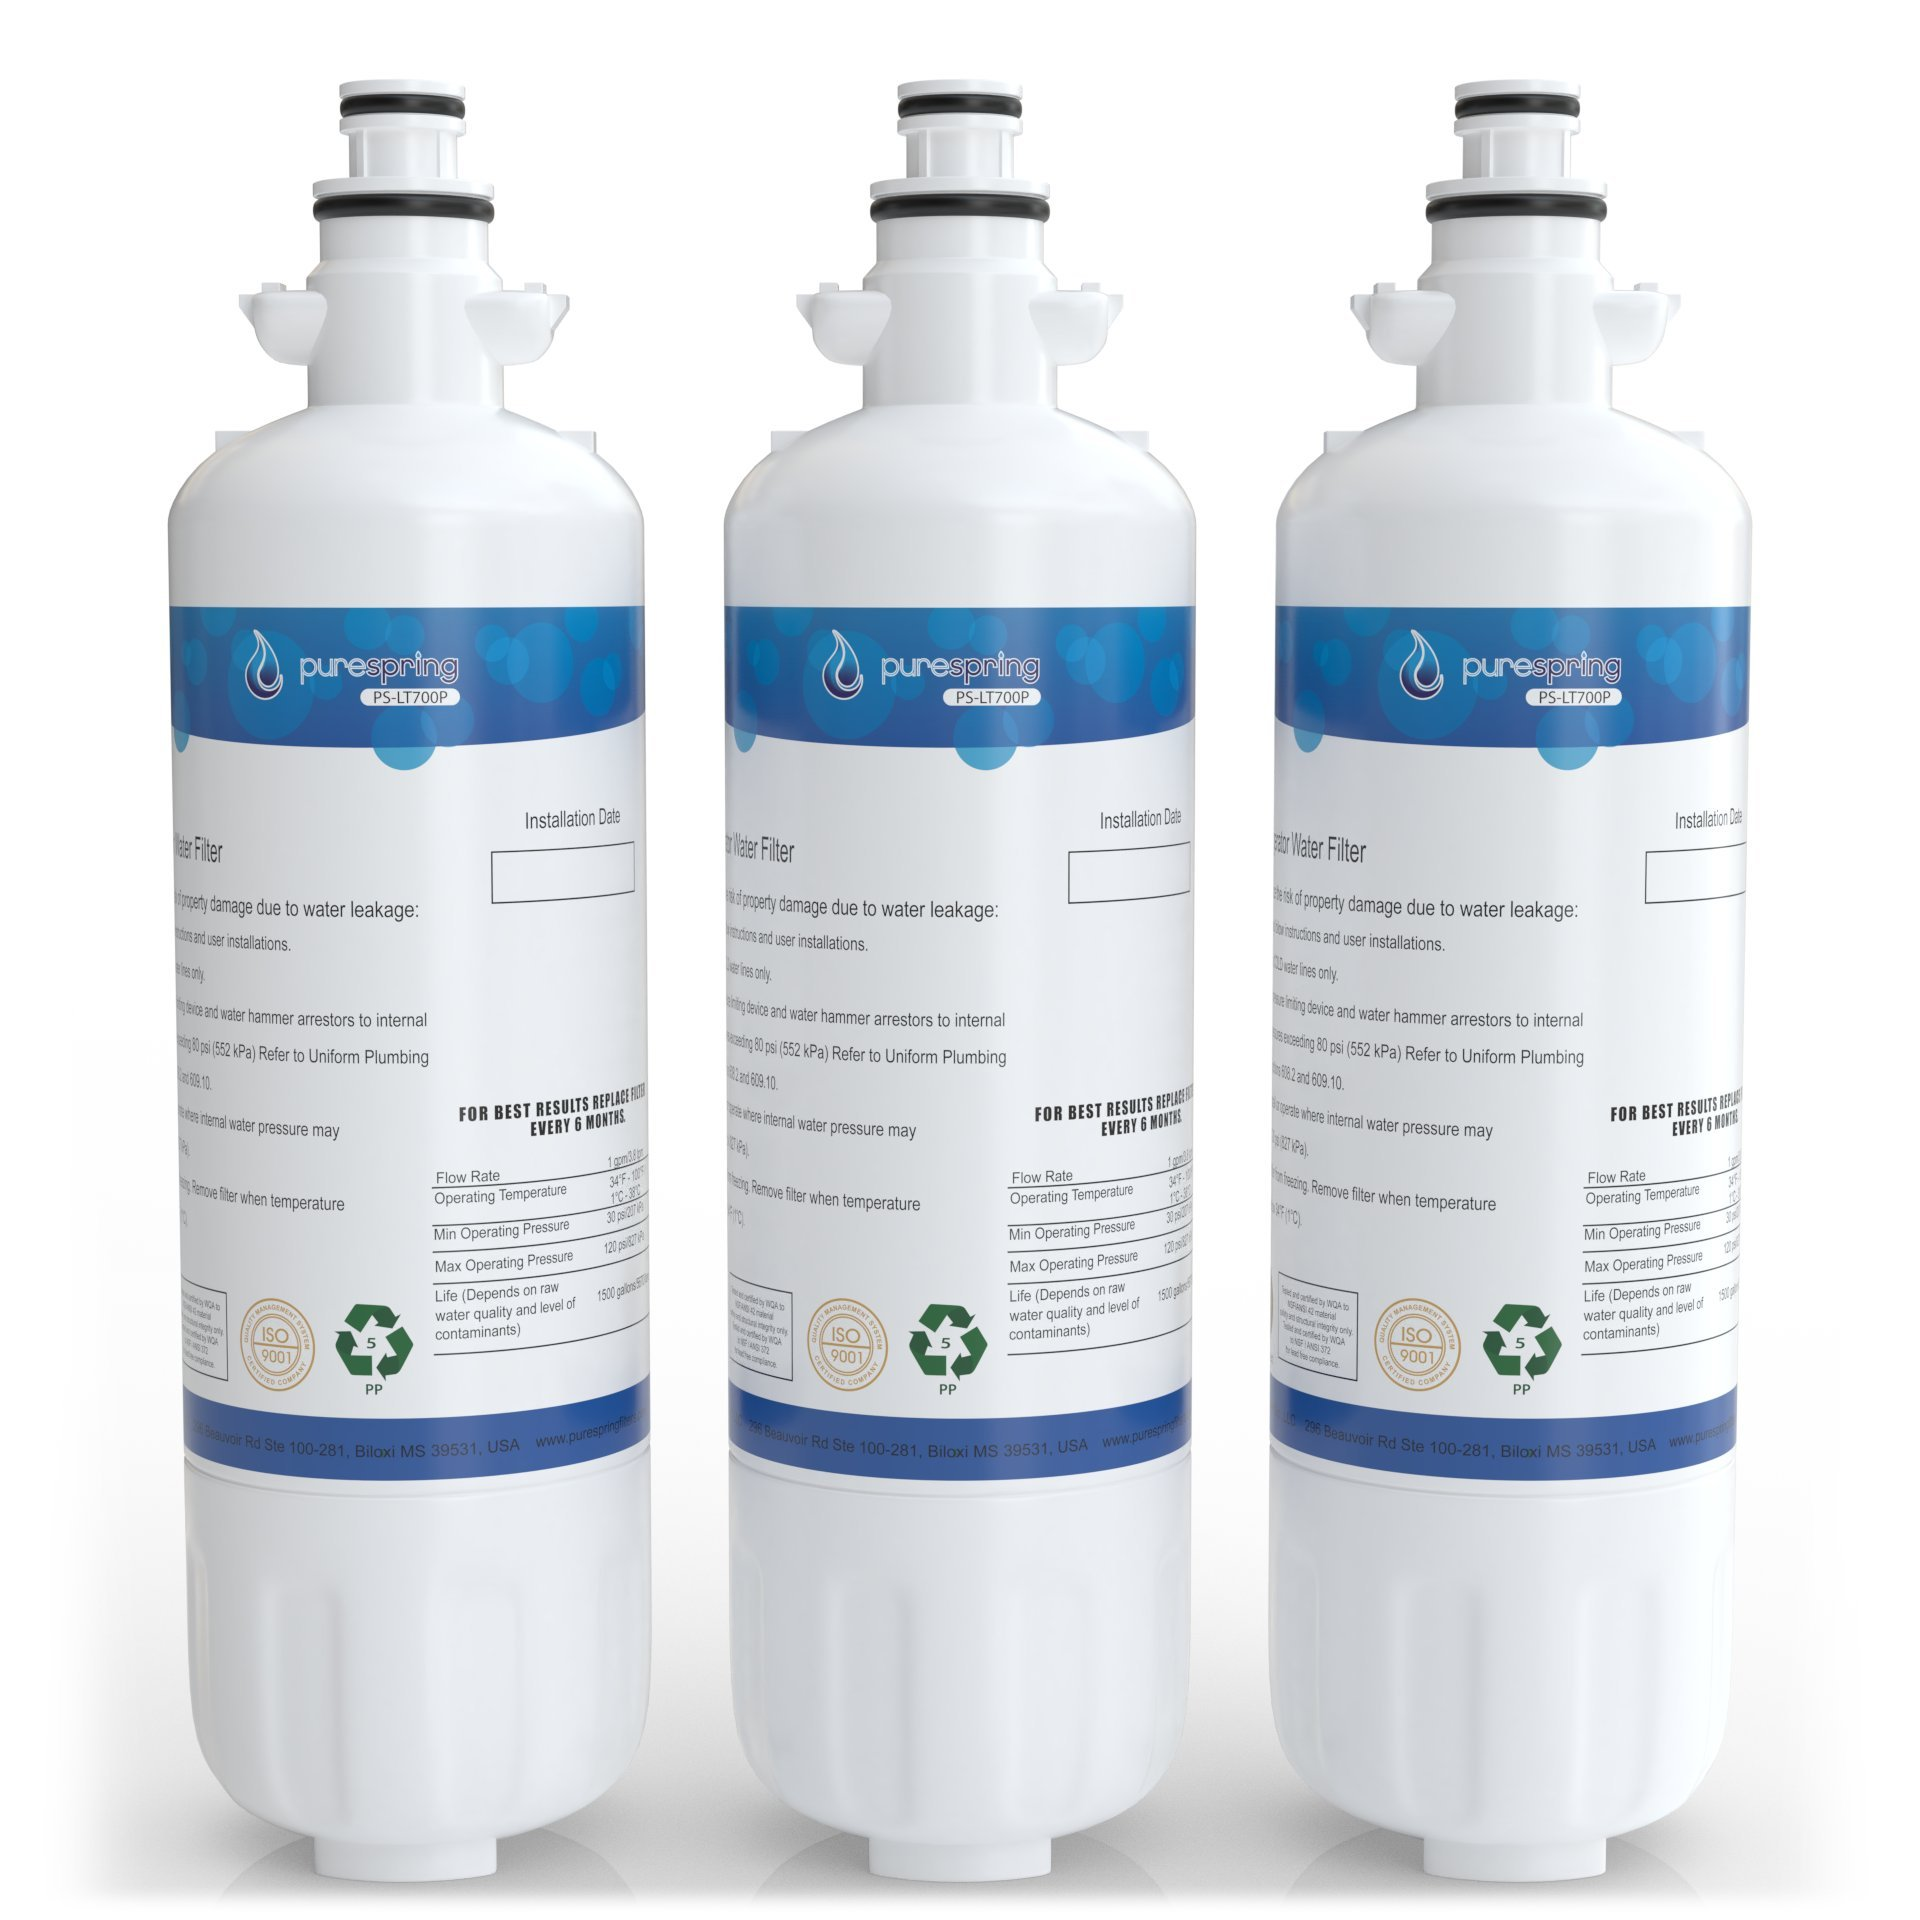 PureSpring LG-LT700P Refrigerator Water-Filter Compatible Cartridge - Replaces LG LT700P, Kenmore 46-9690, 469690, ADQ36006101, ADQ36006102 (3 Pack) by PureSpring (Image #1)